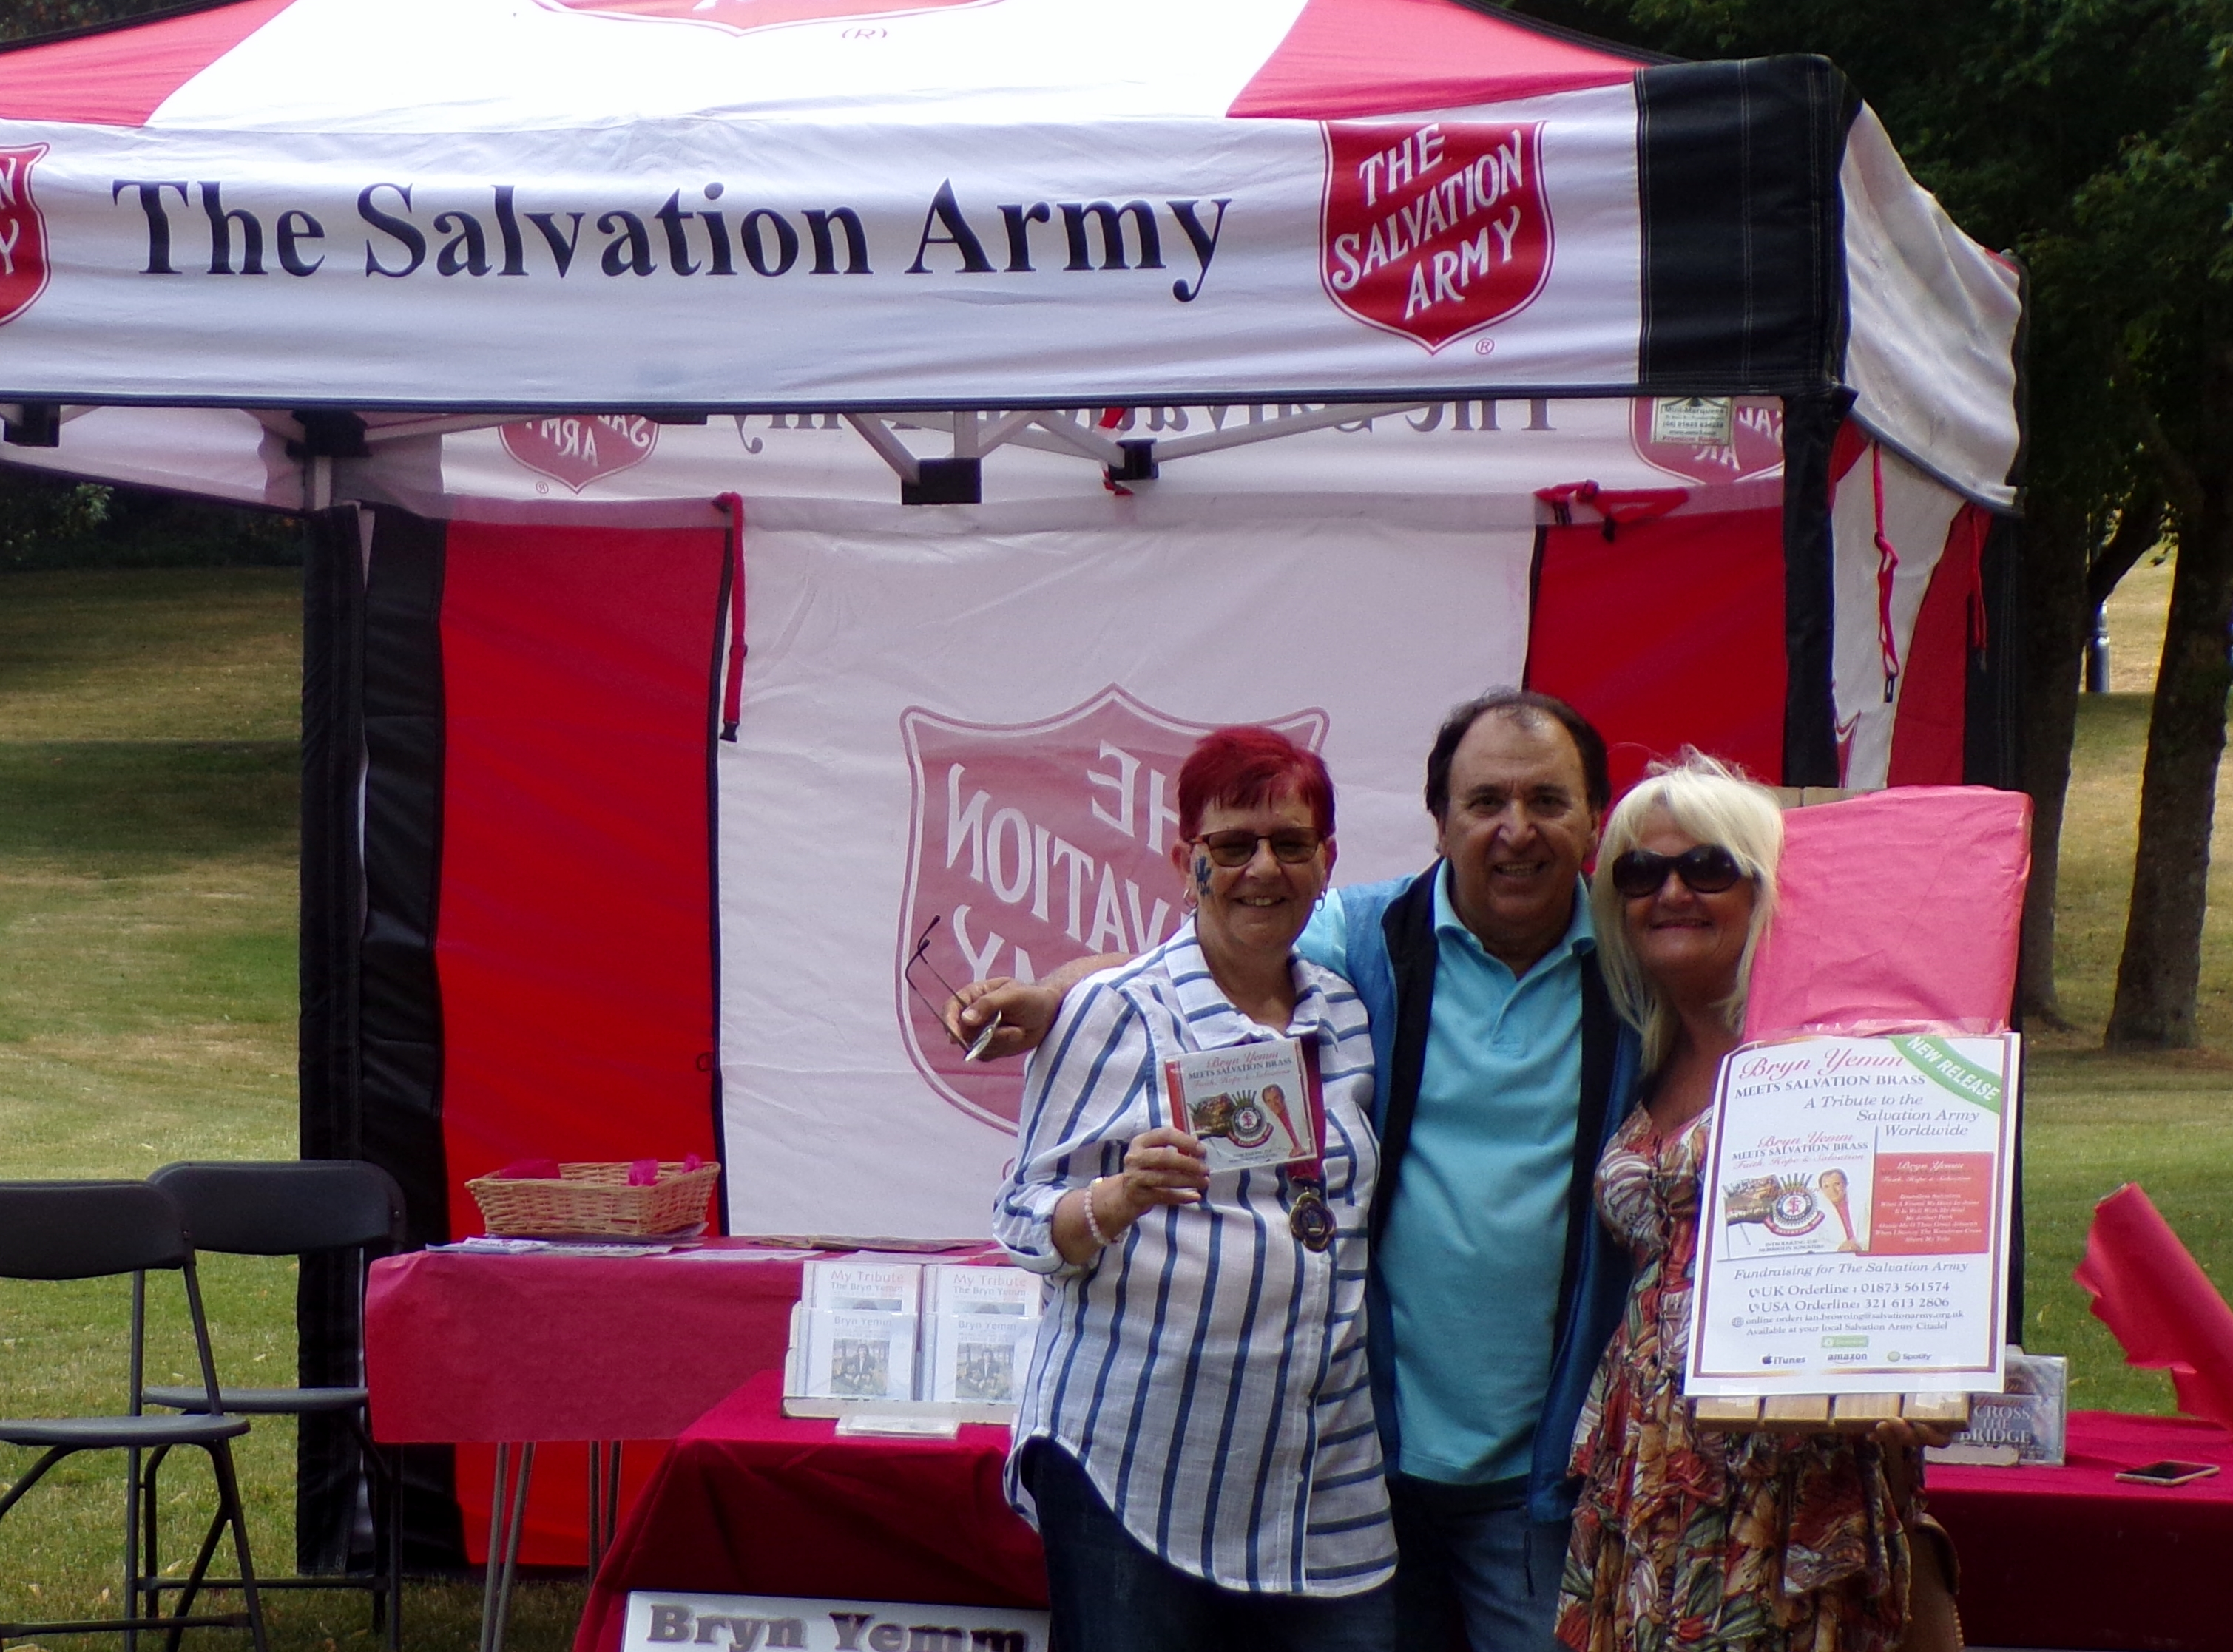 chair matthews and cllr james at the salvation army stand